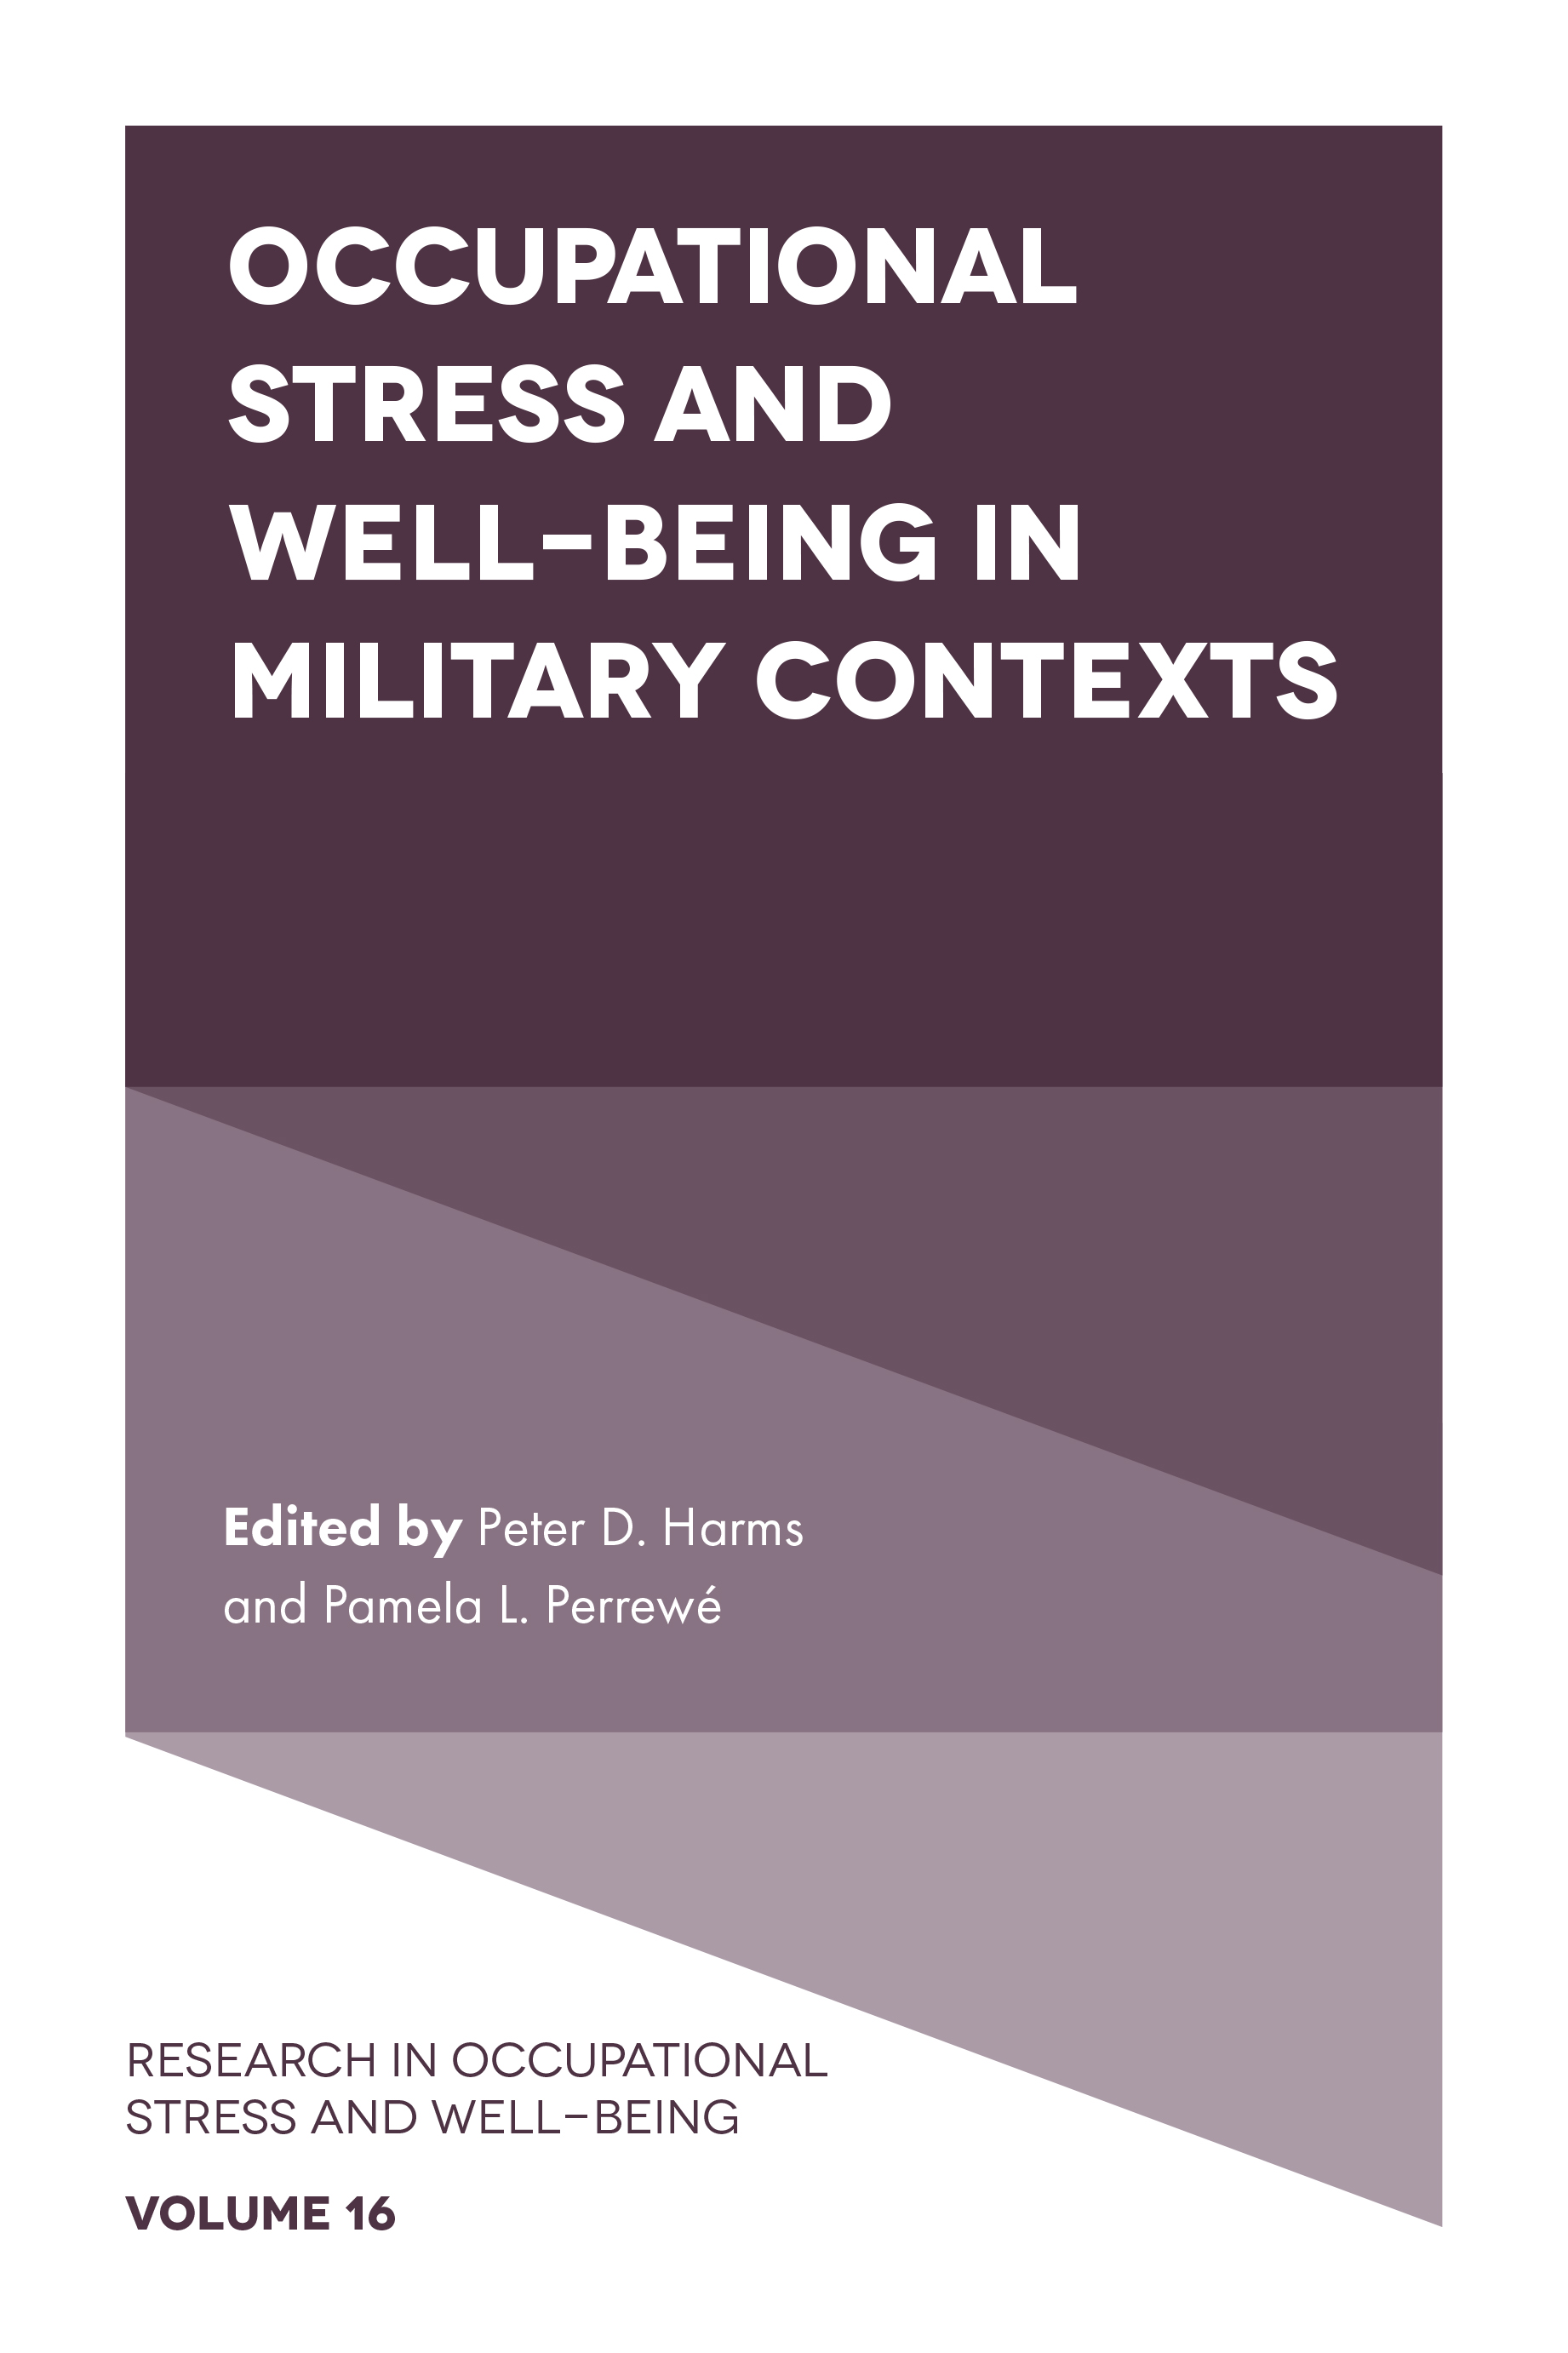 Book cover for Occupational Stress and Well-Being in Military Contexts a book by Peter D. Harms, Pamela L. Perrewé